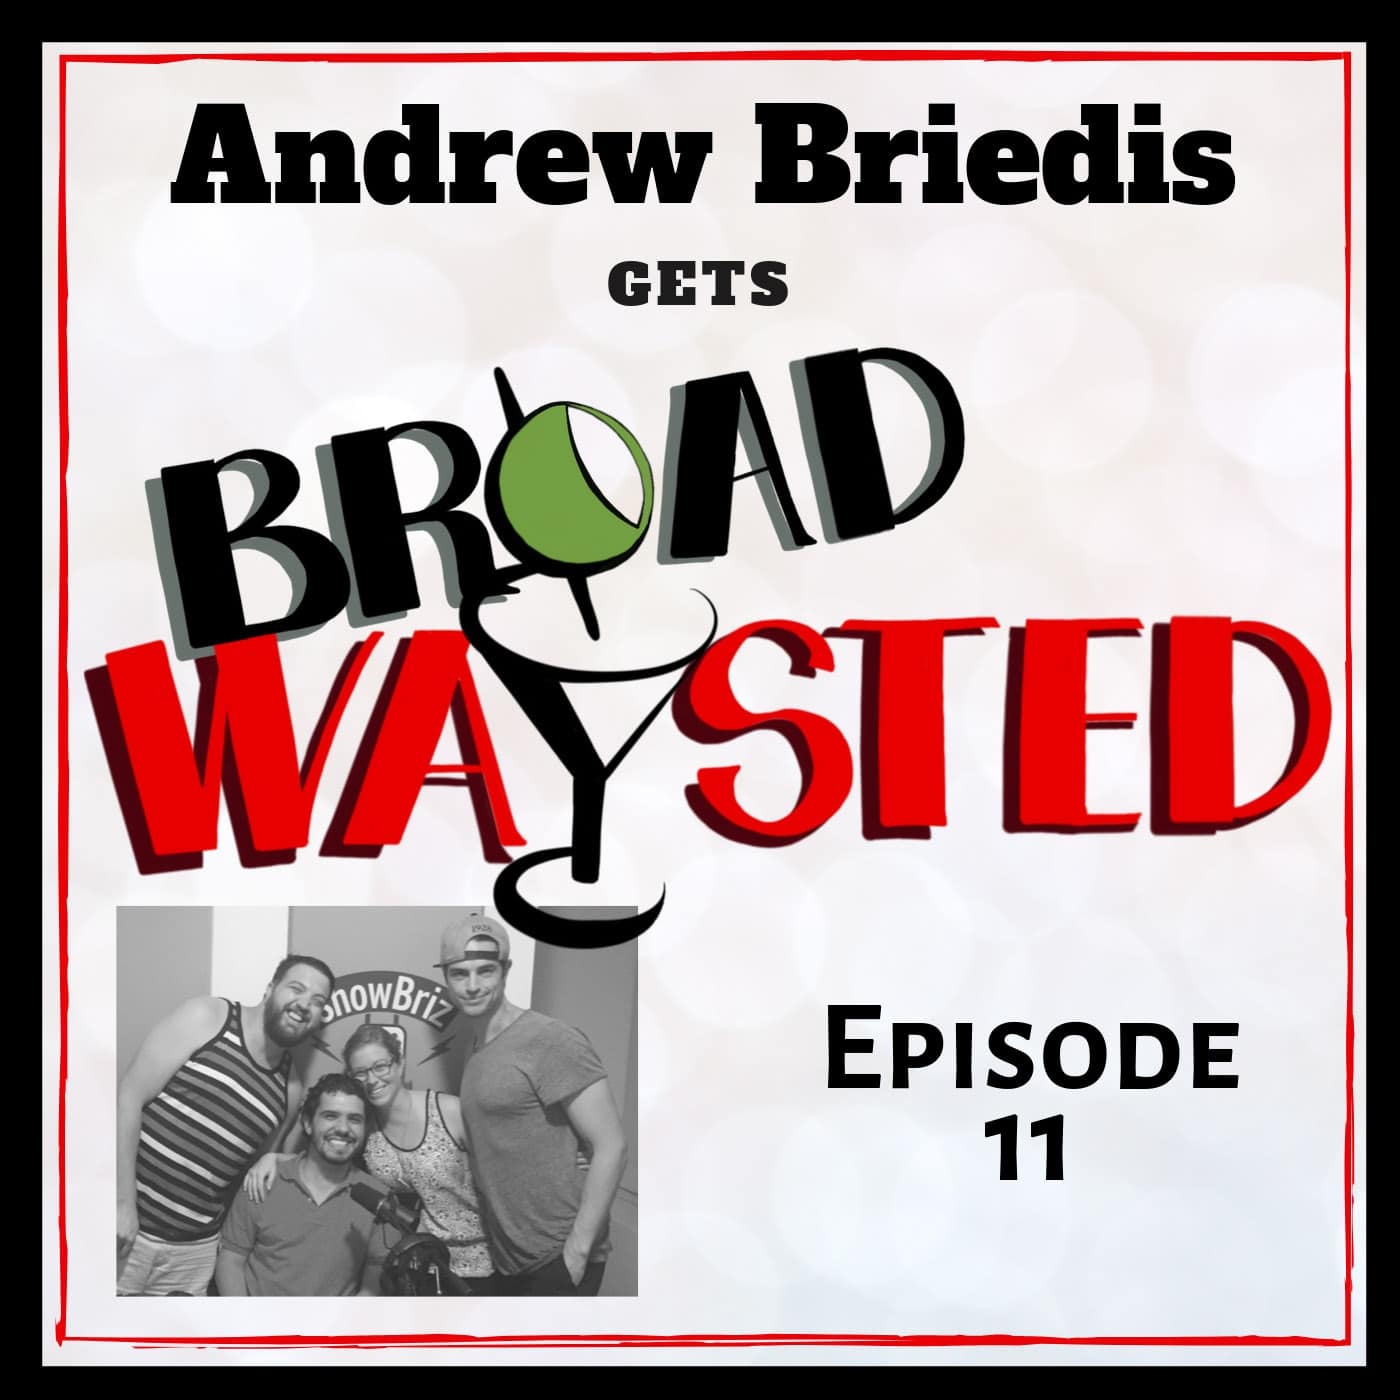 Broadwaysted Ep 11 Andrew Briedis